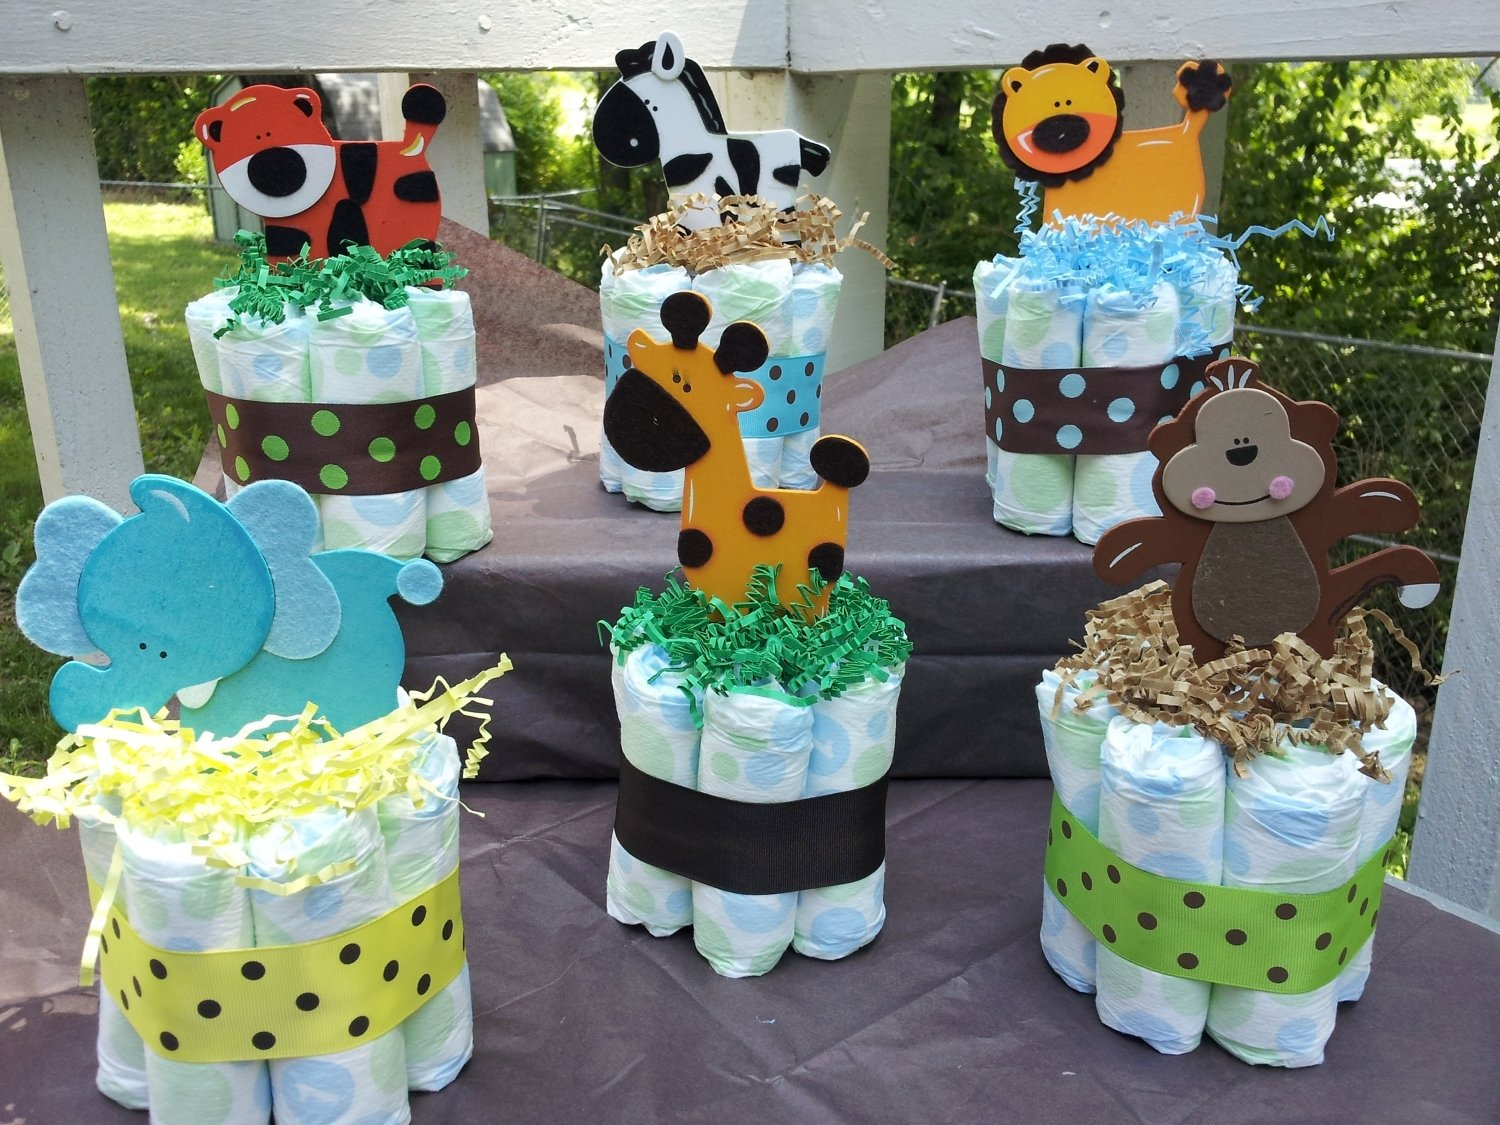 10 Best King Of The Jungle Baby Shower Ideas king of the jungle baby shower ideas omega center ideas for baby 2020